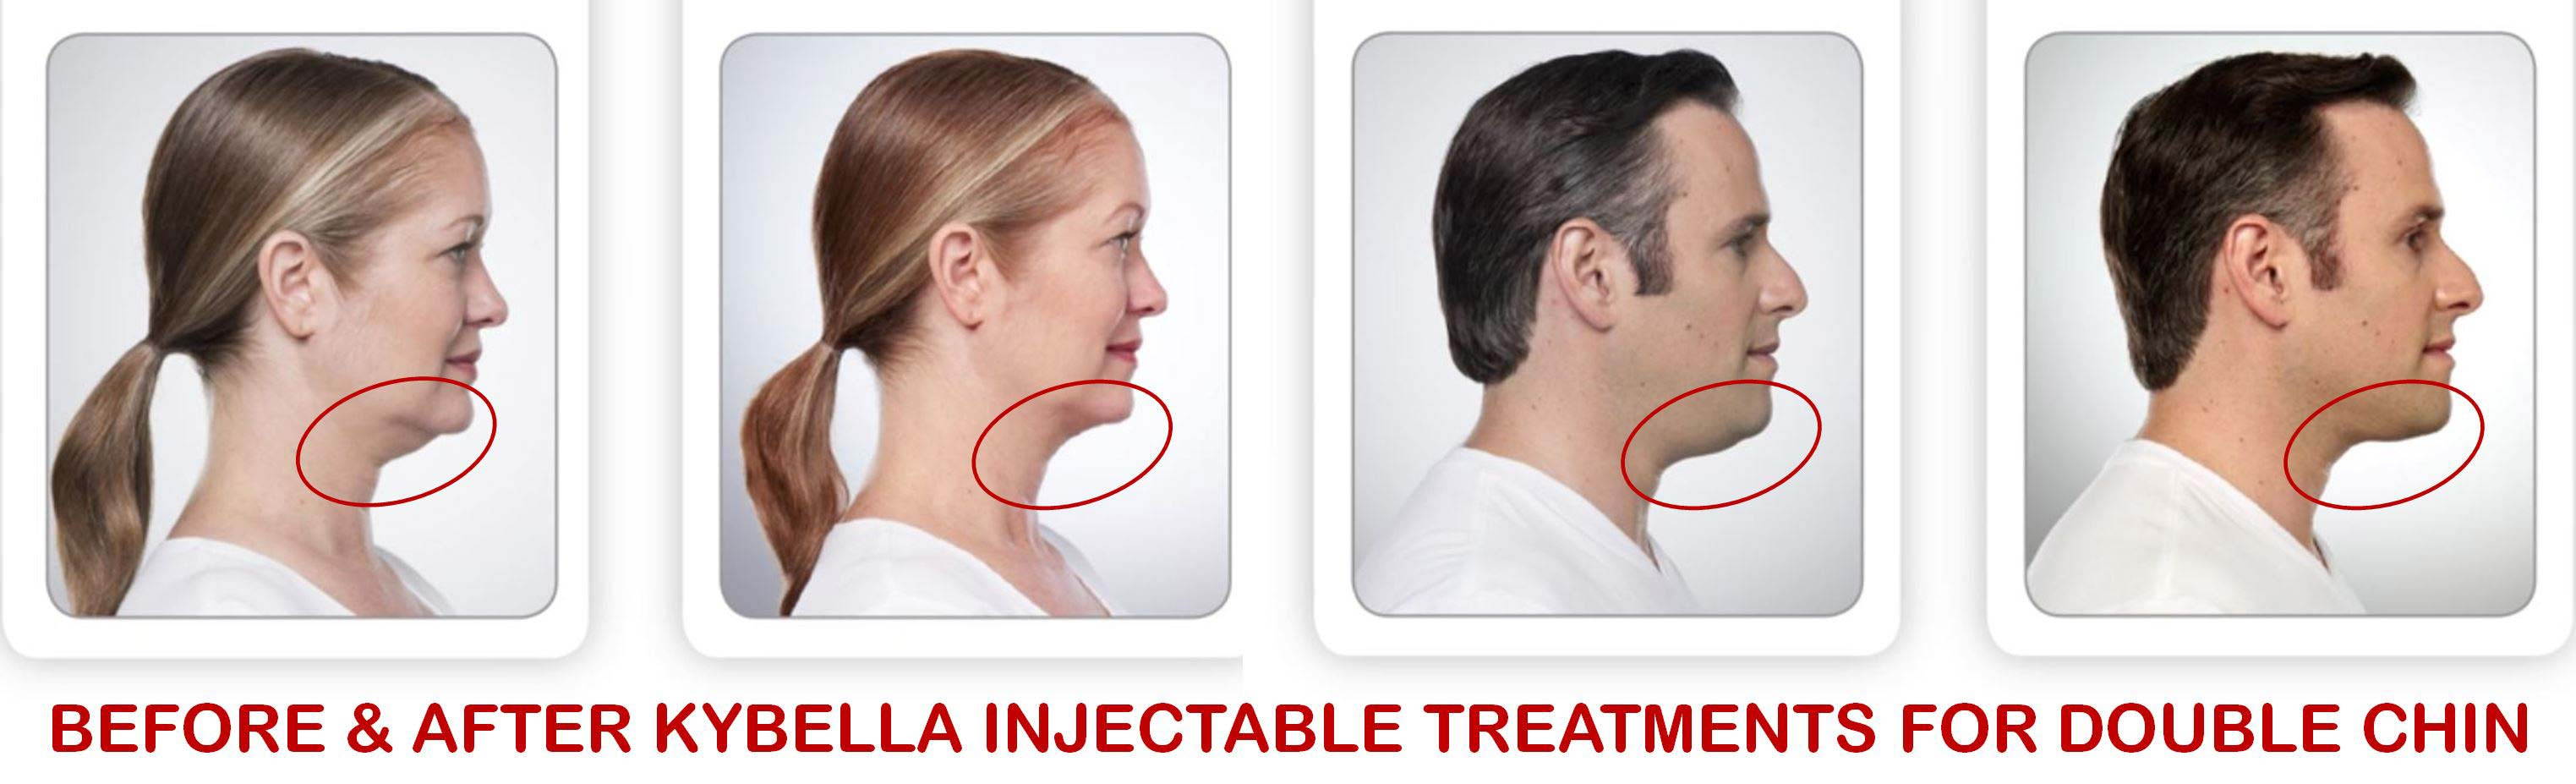 coastal-valley-dermatology-carmel-kybella-before-after-photo